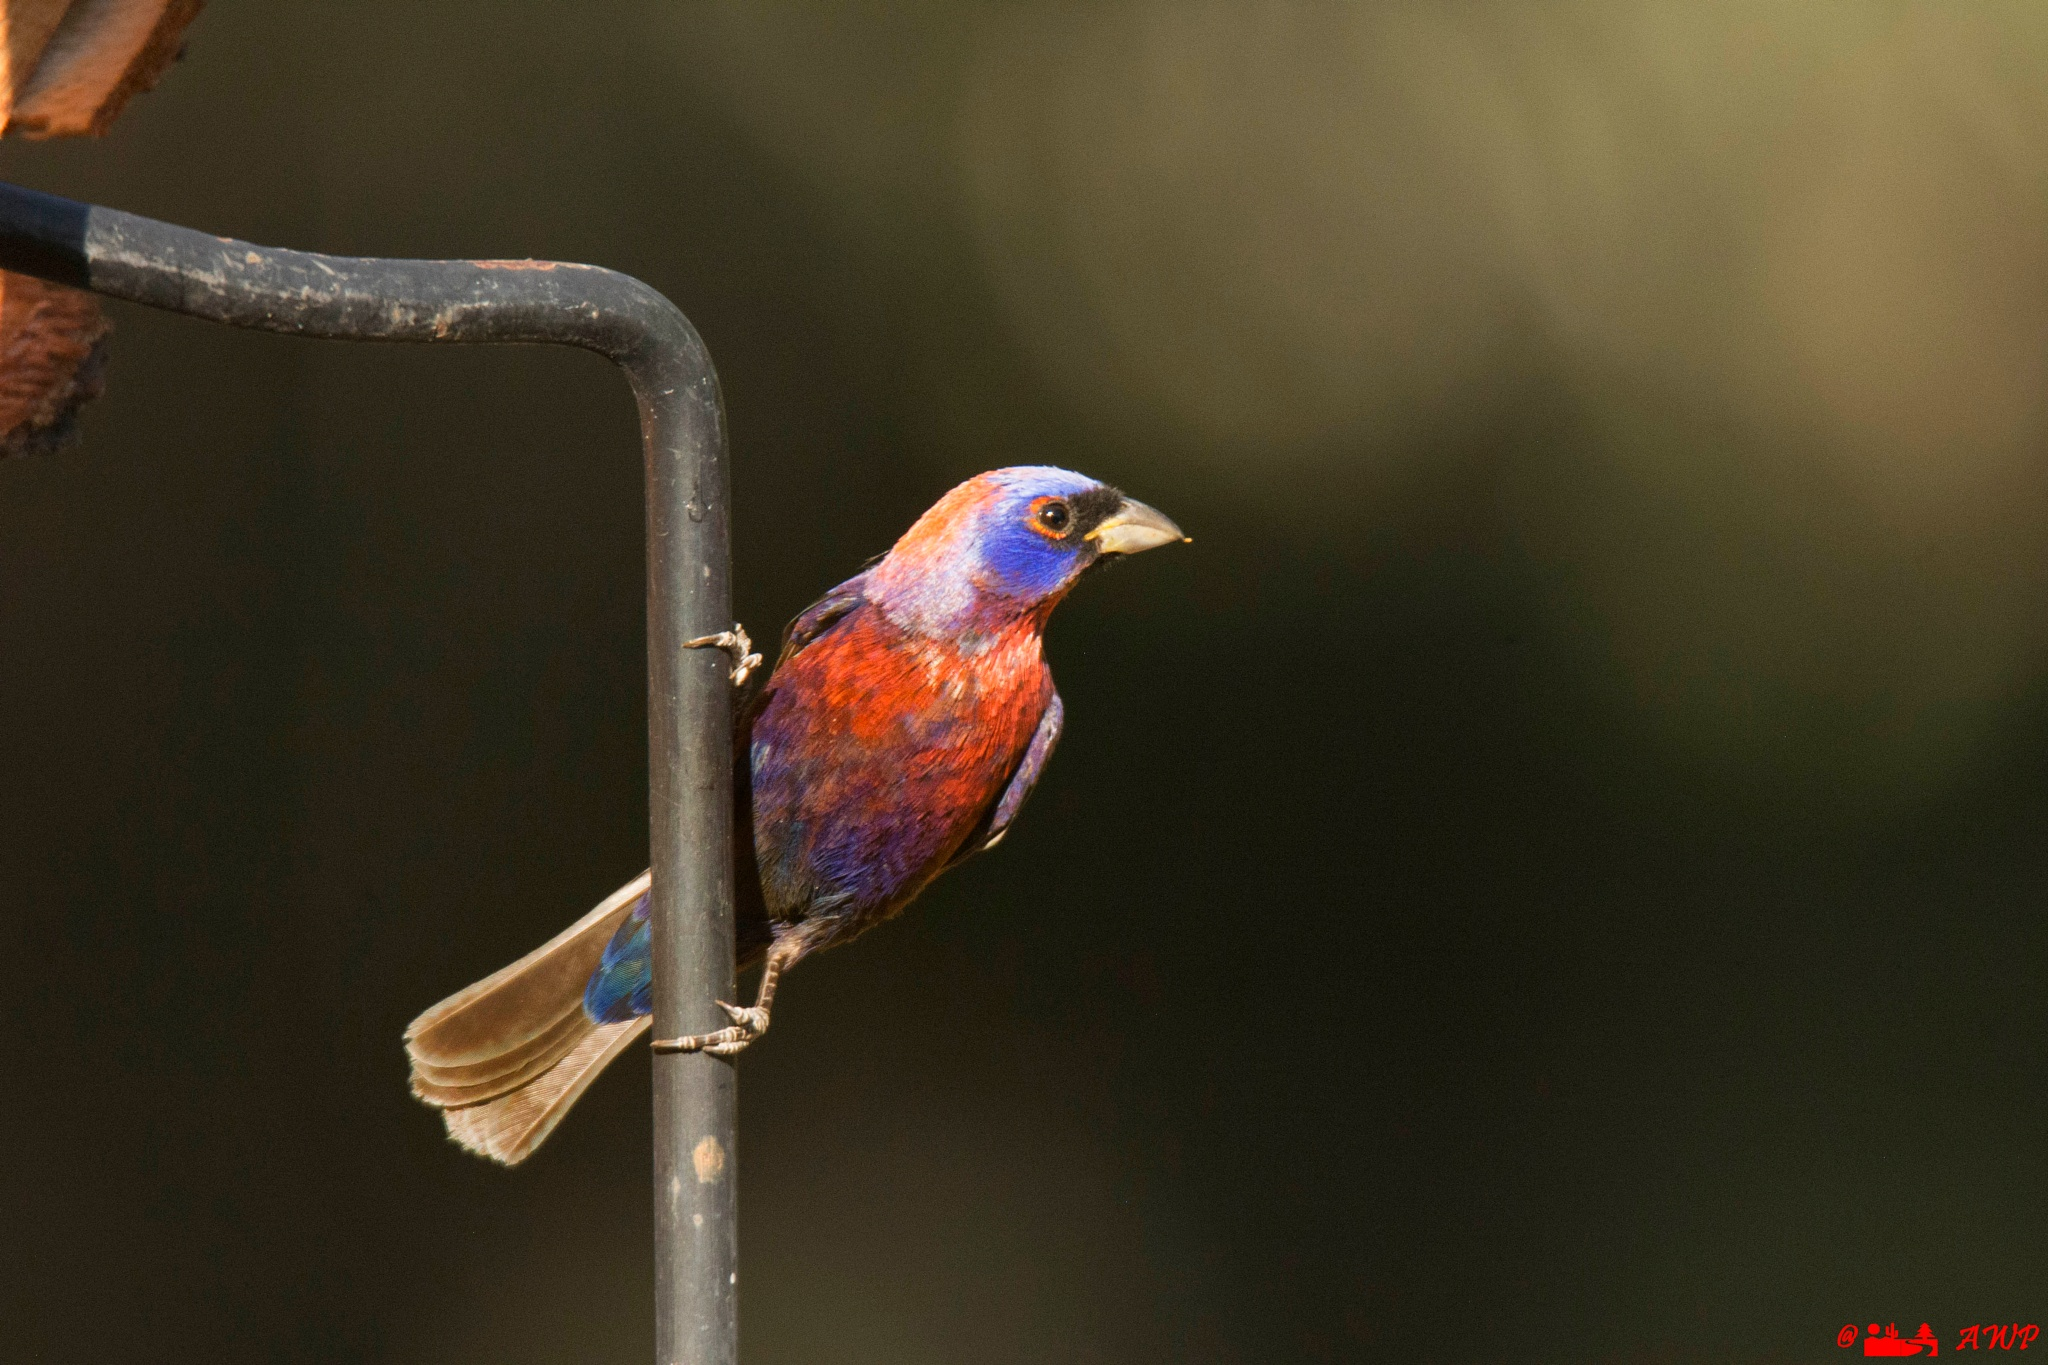 Feathers of many colors by artwildphotos